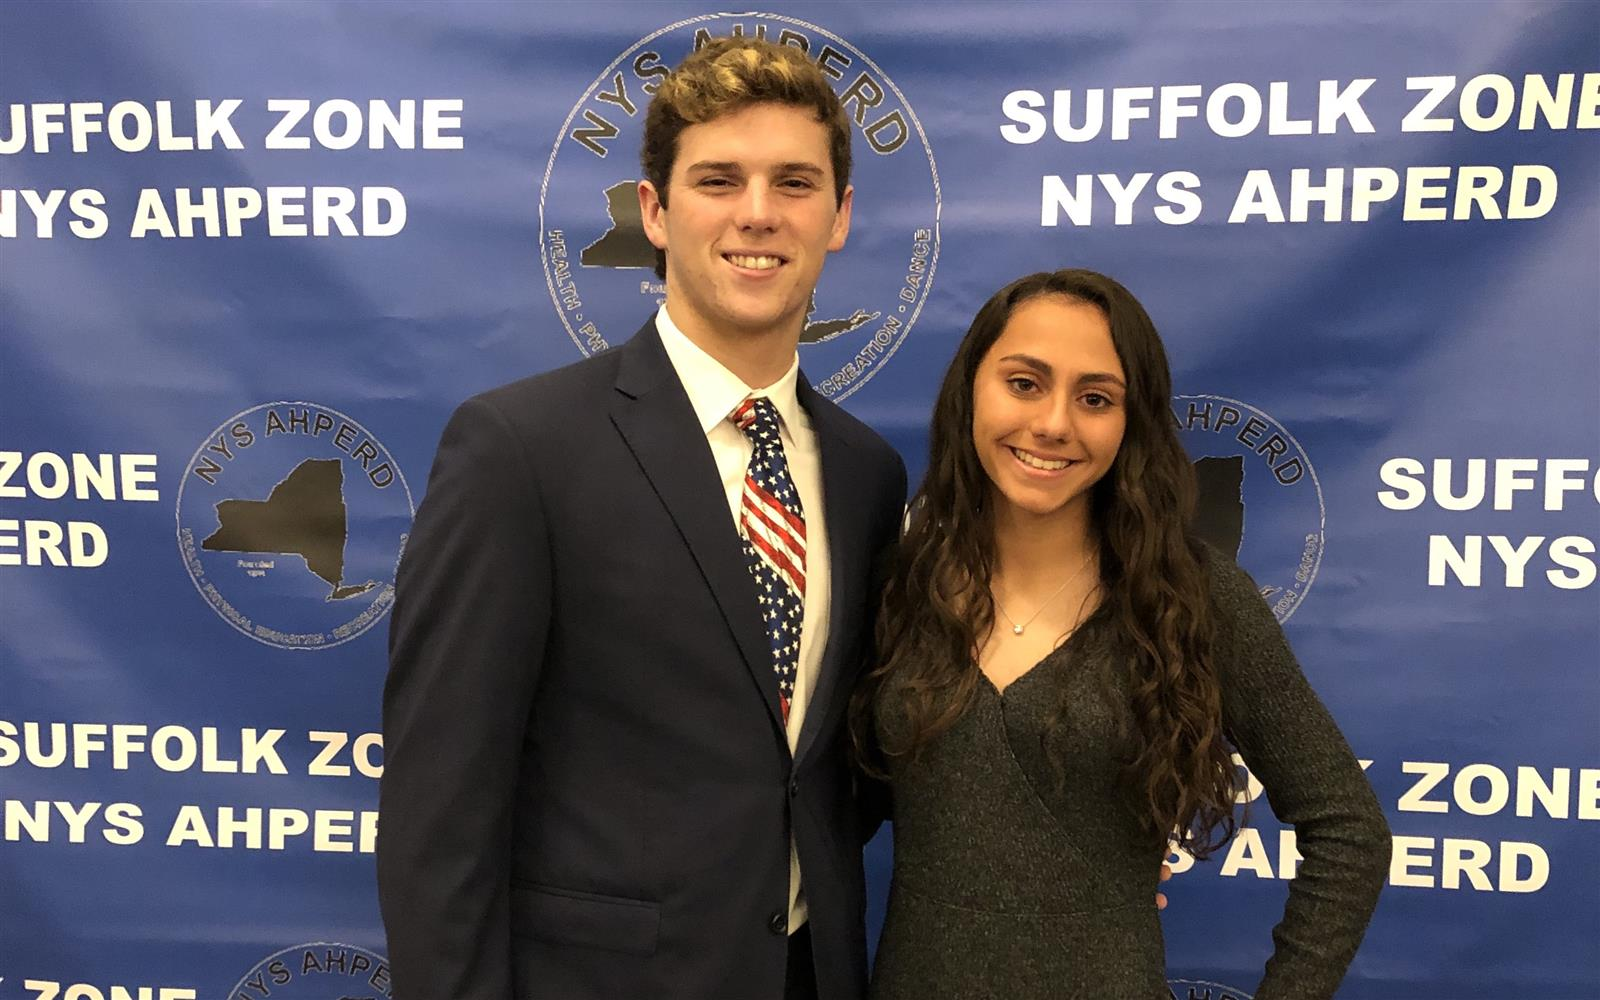 DiCapua and Sgueglia Recognized as Suffolk Zone Winners